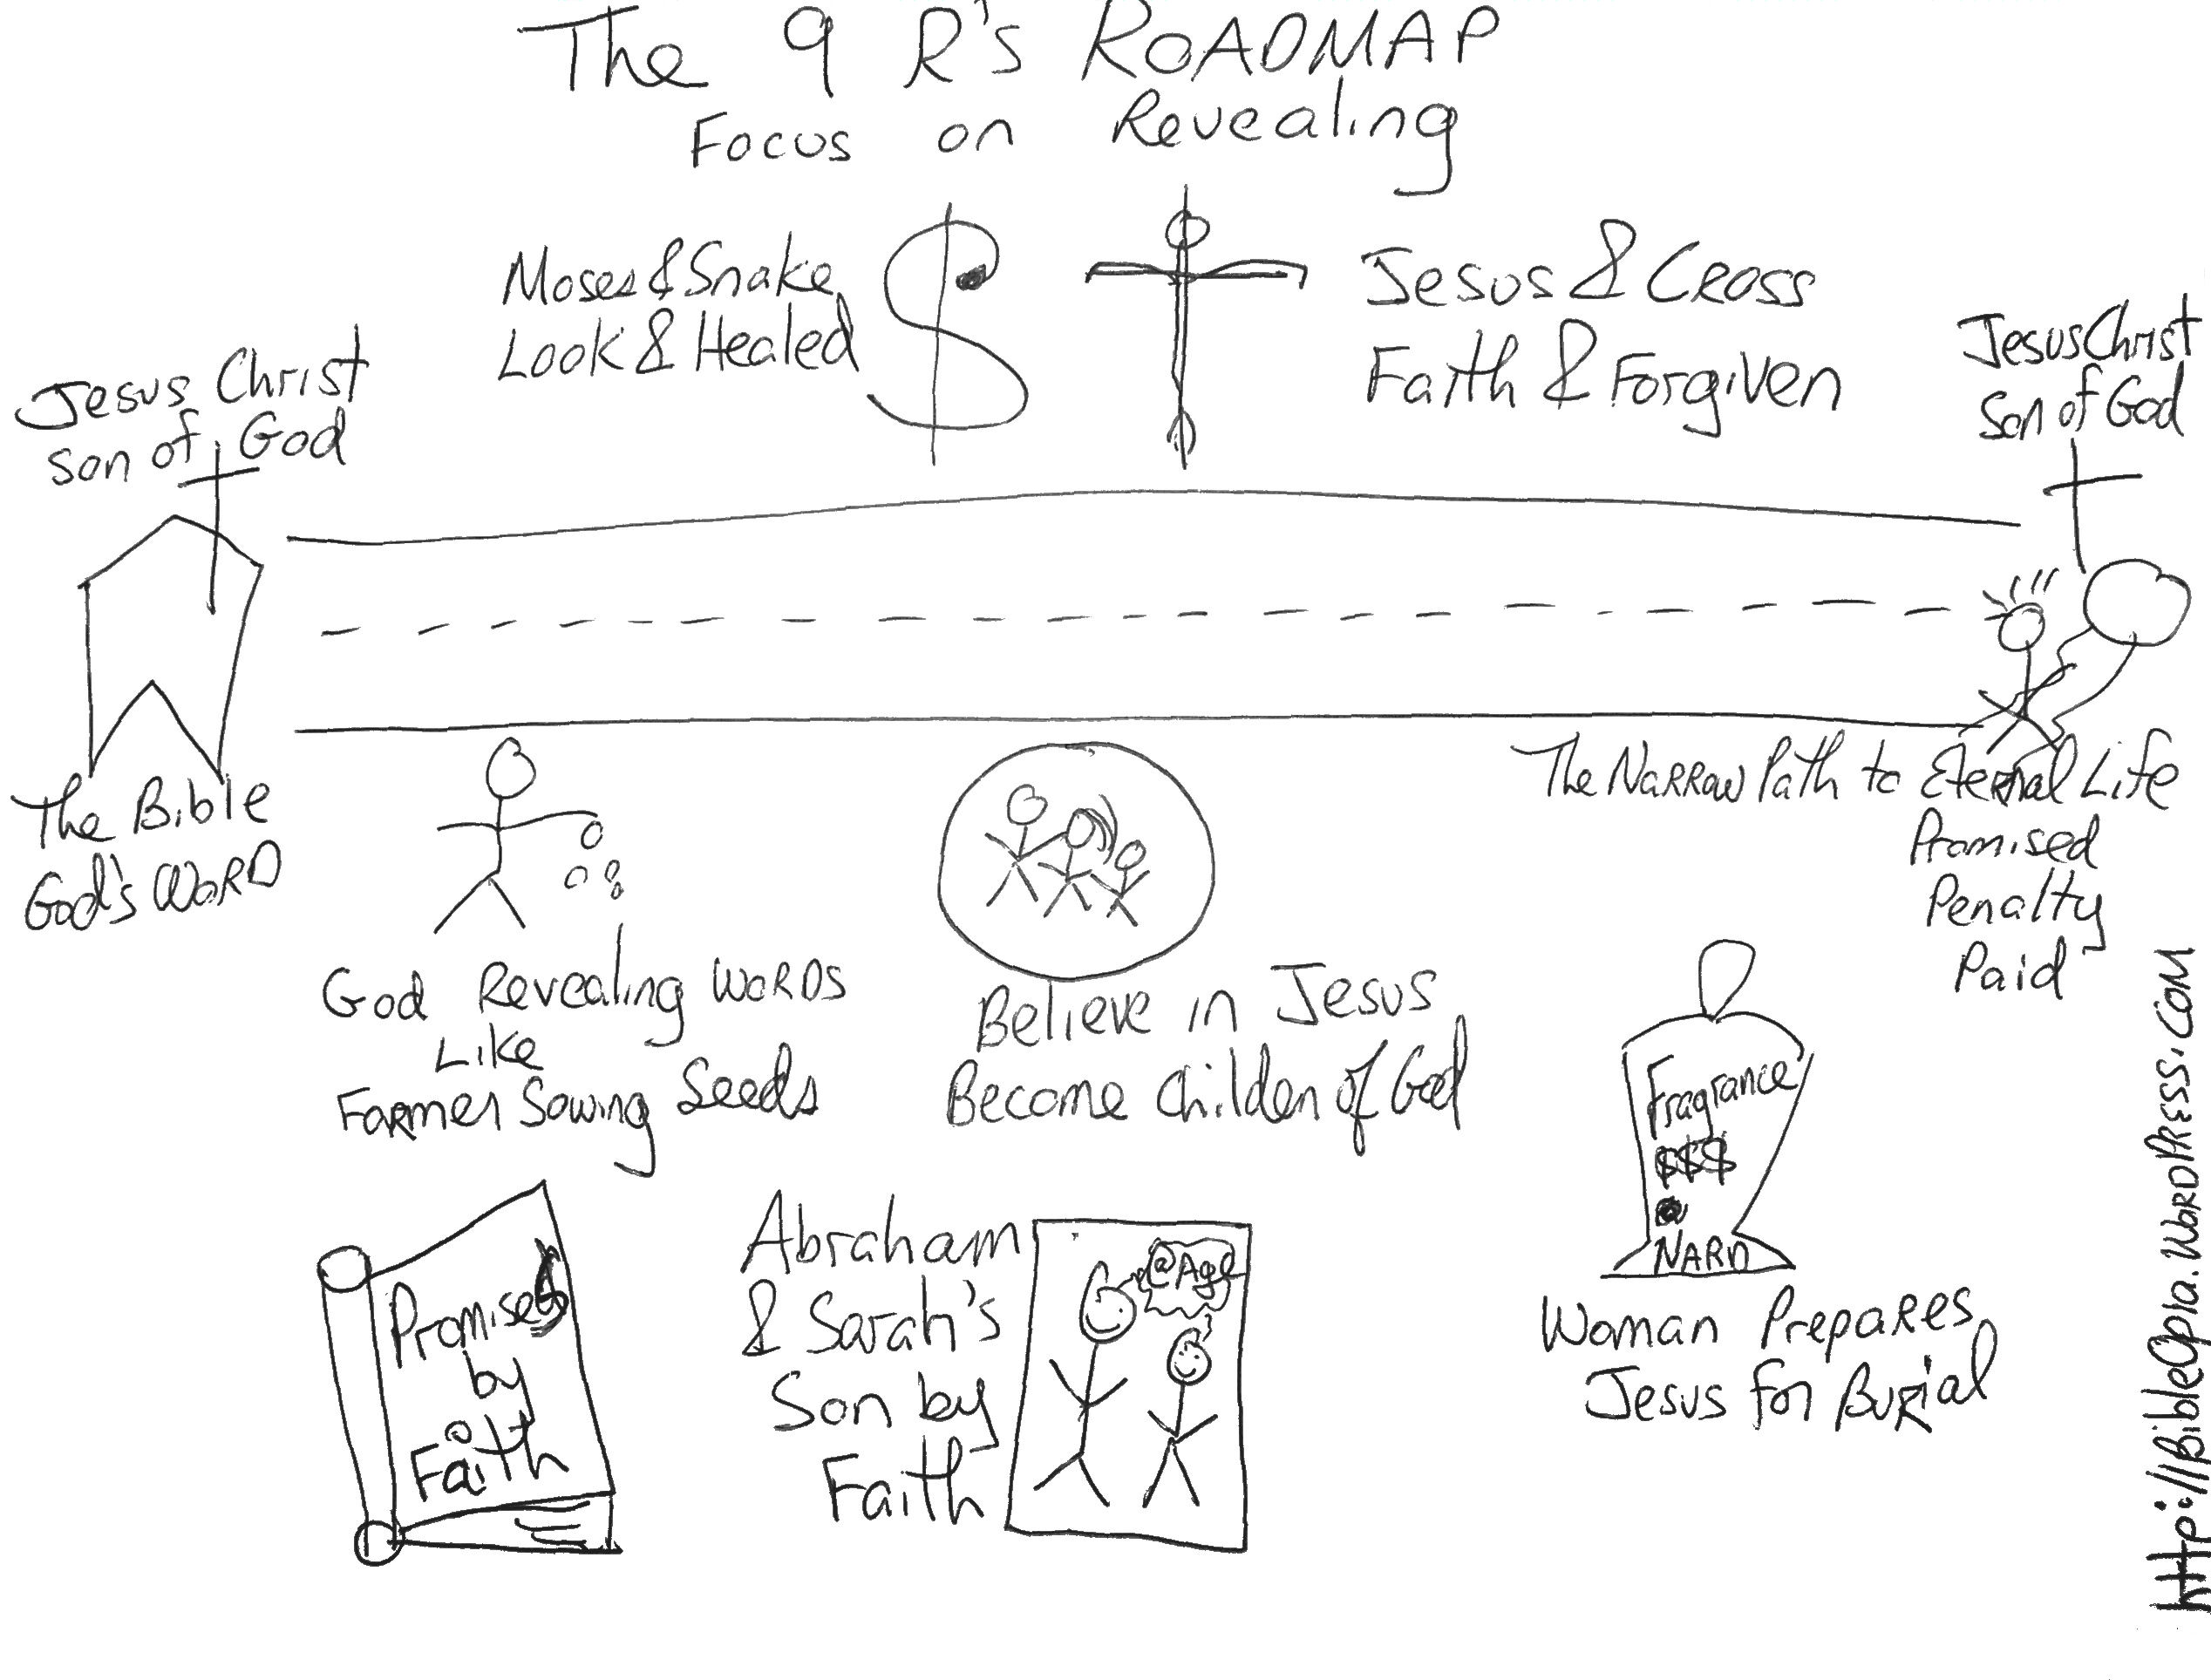 Drawn road road map R's Revealing on Reapers Revealing